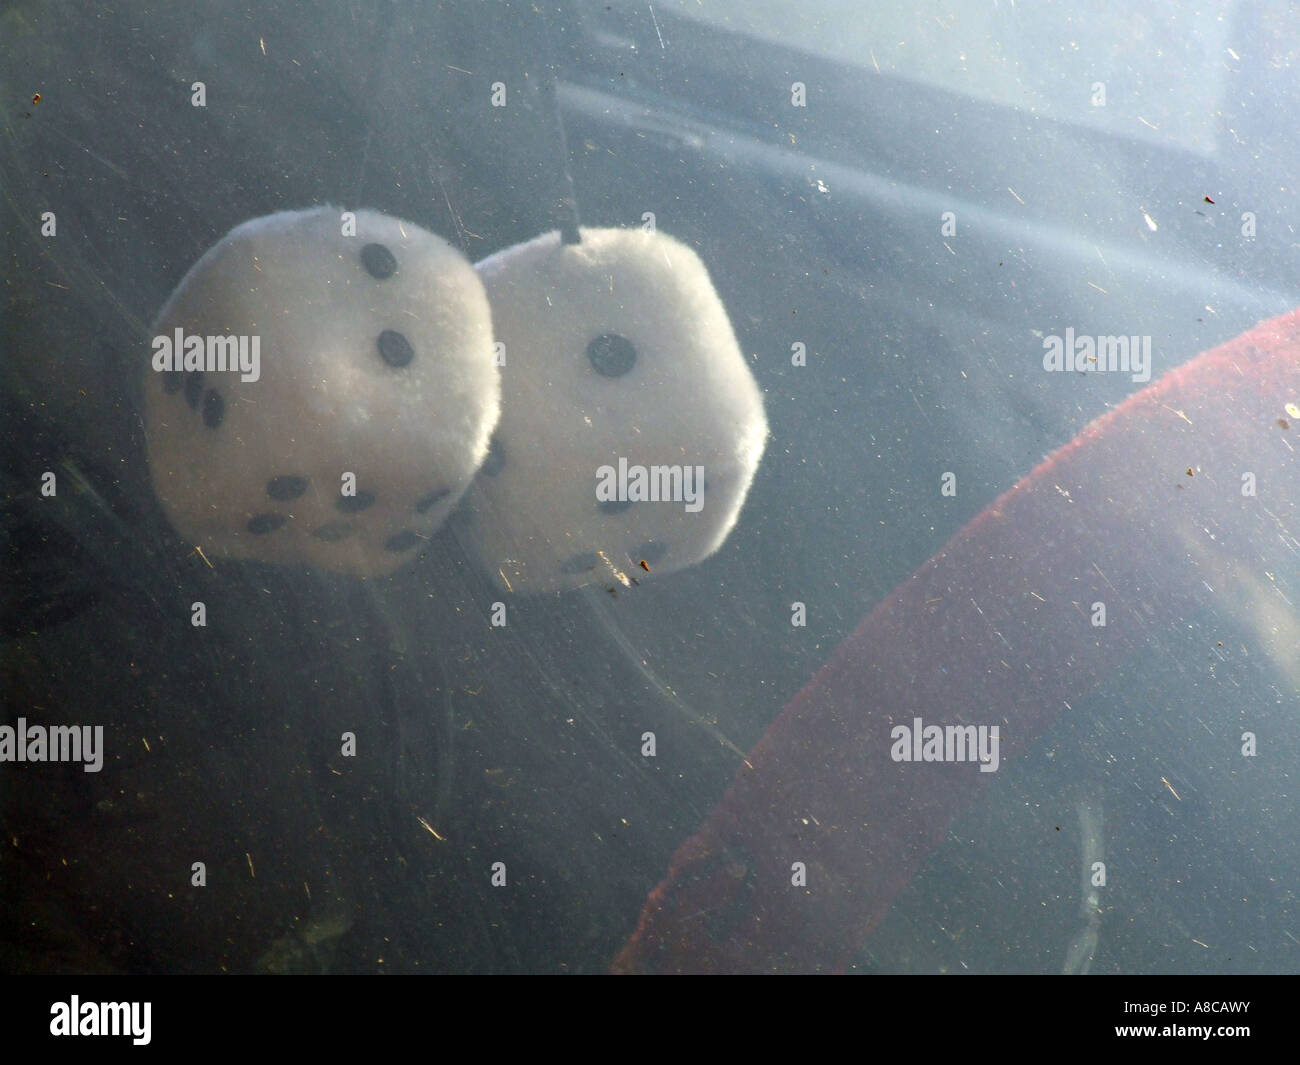 fluffy dice in car window - Stock Image